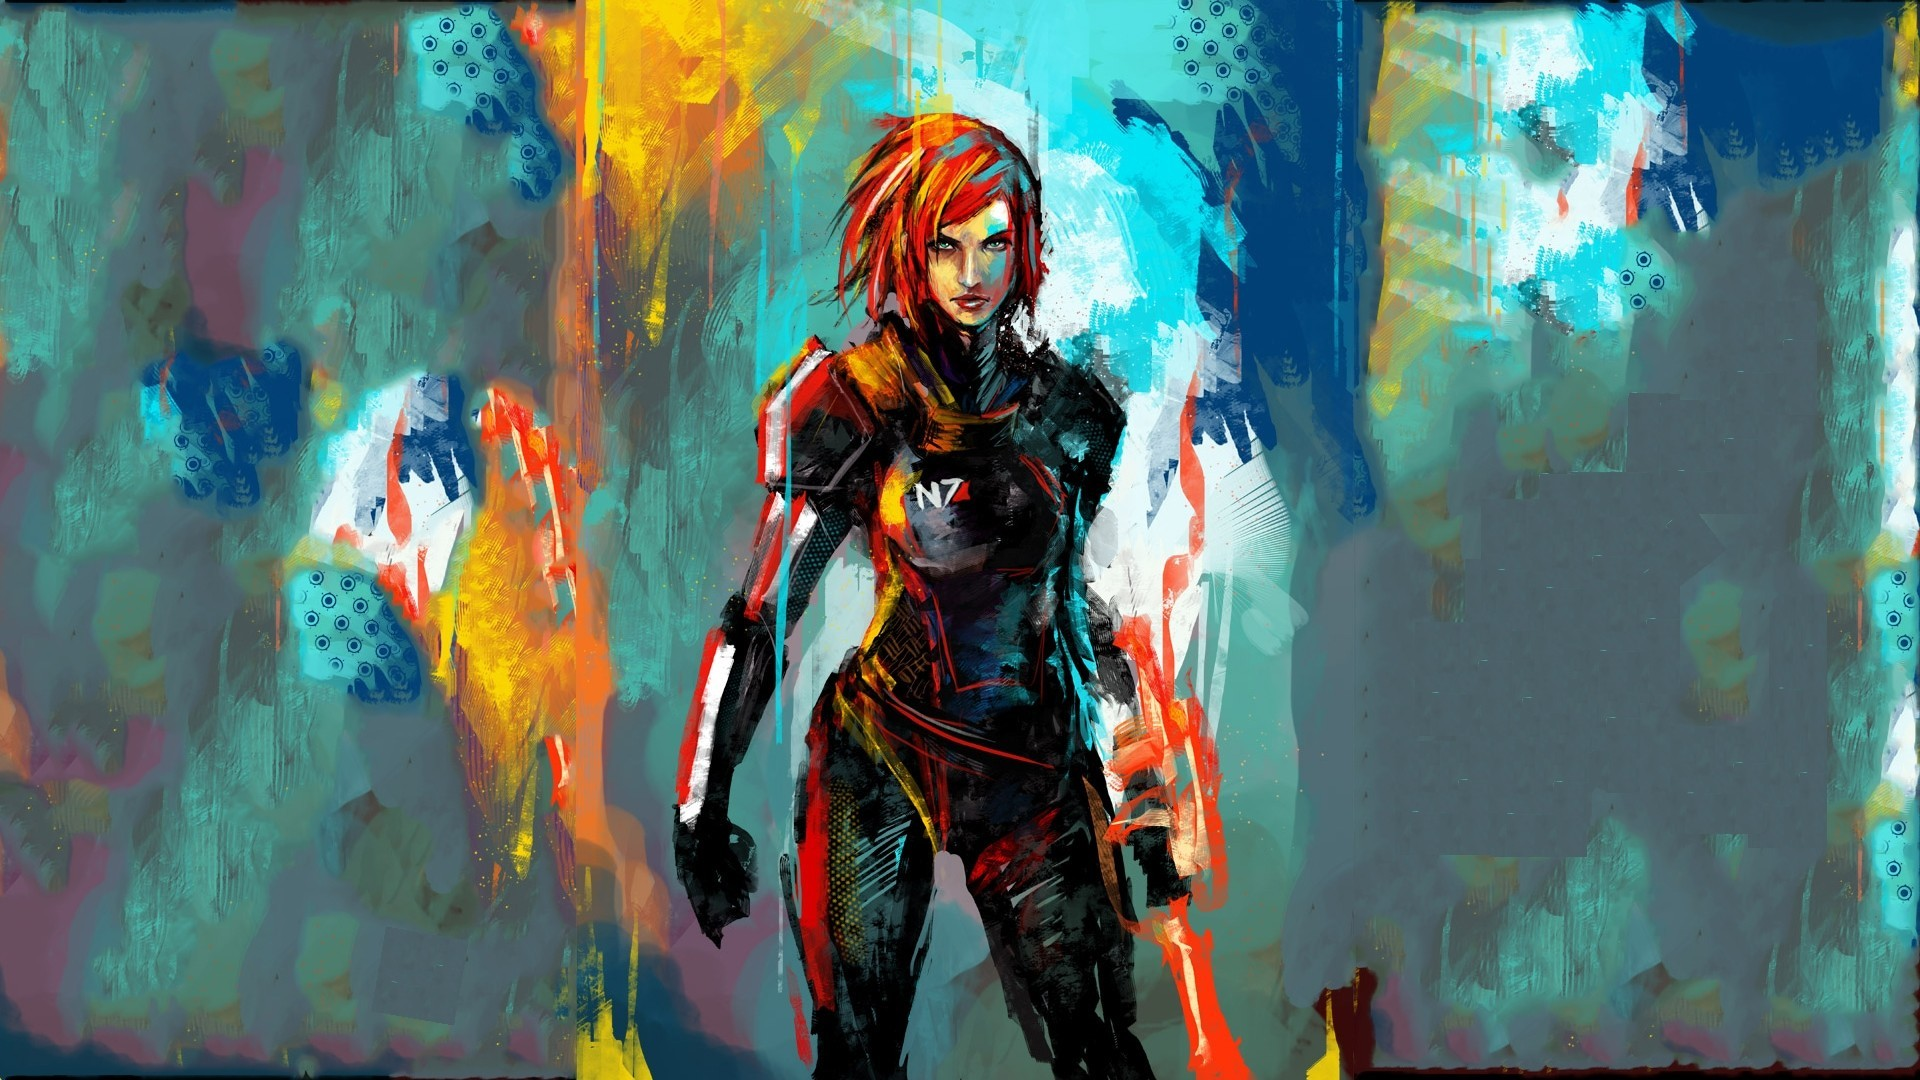 Mass Effect Wallpapers! So you can get hyped up for the new game even more!